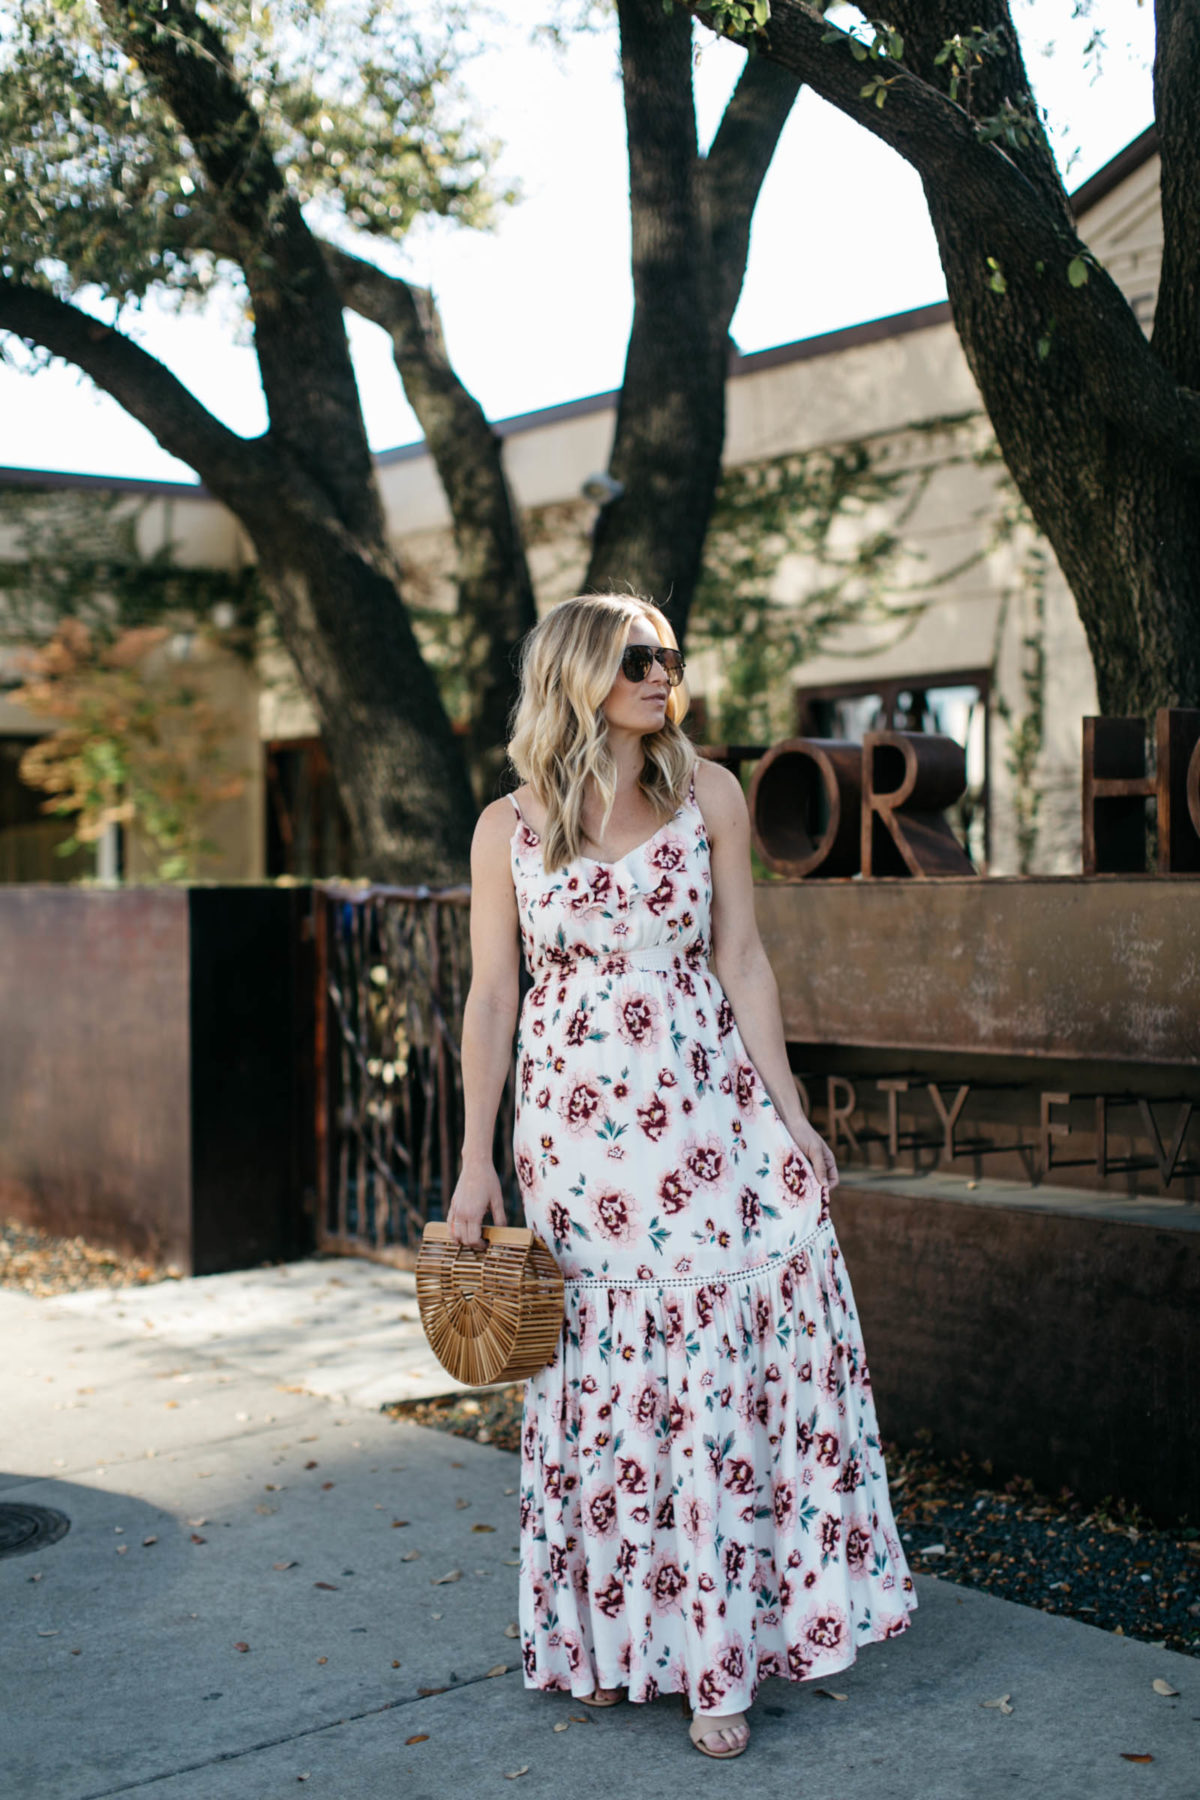 Spring floral dress outfit